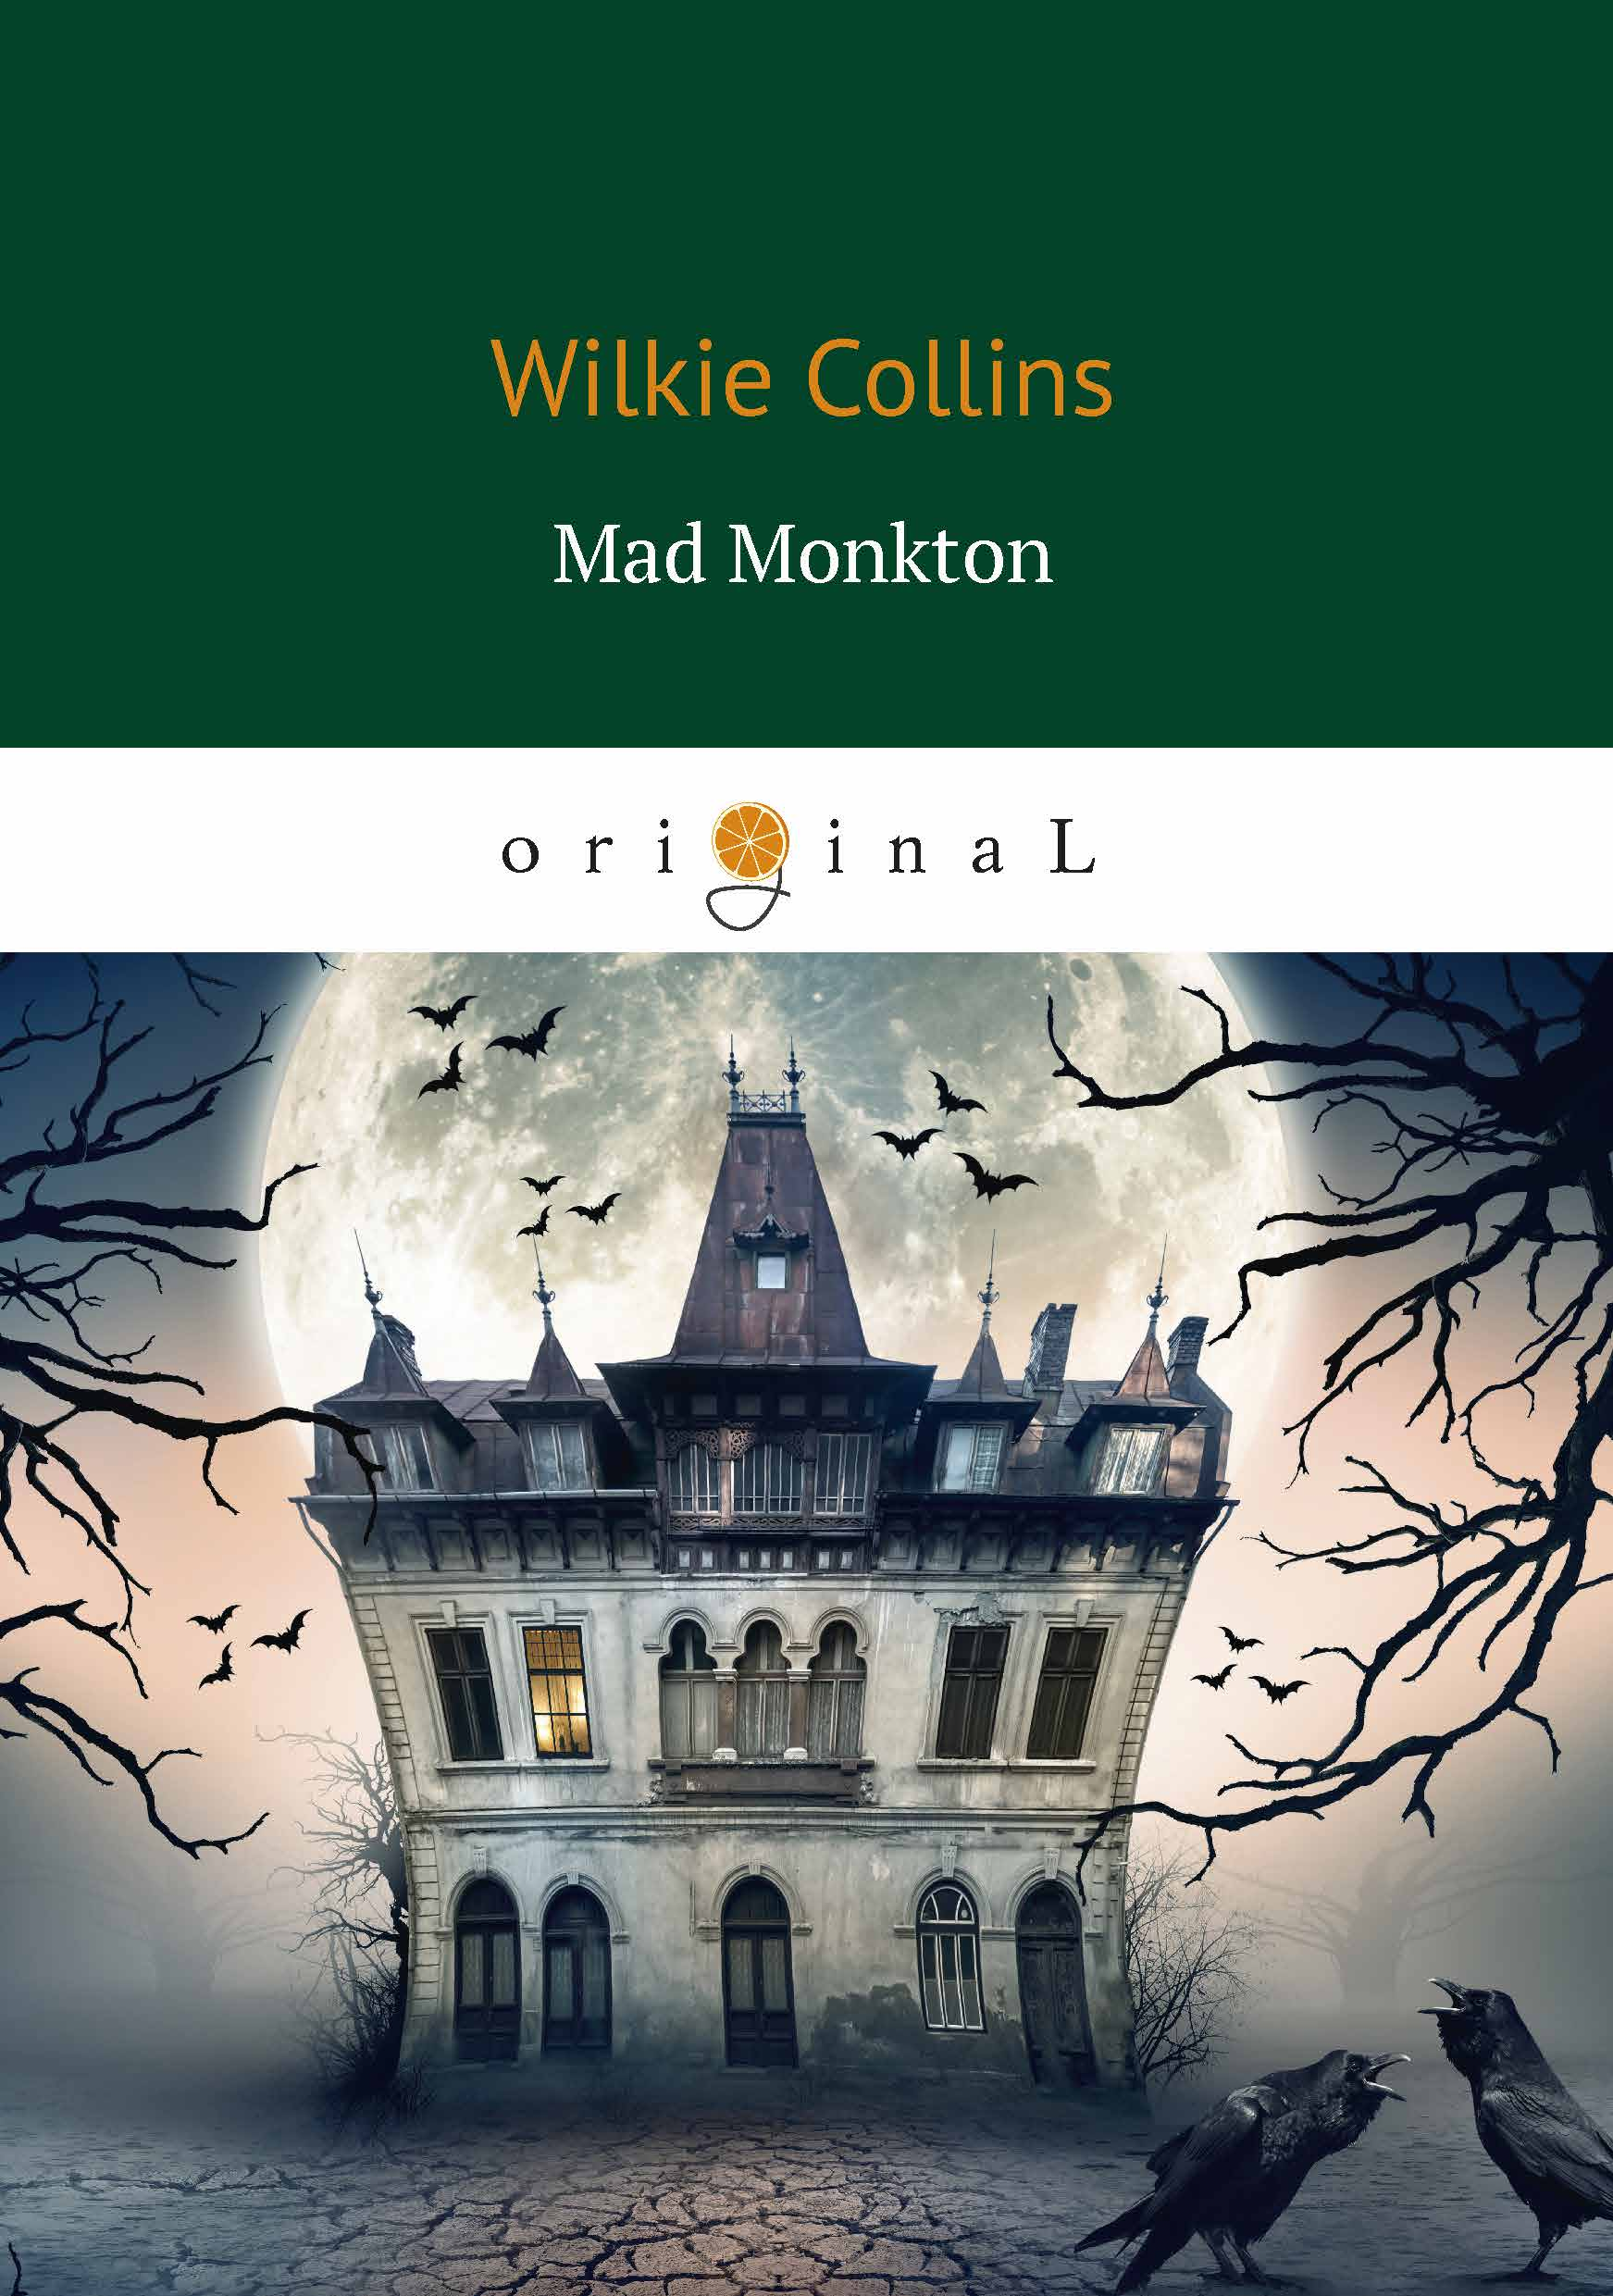 Mad Monkton Mad Monkton is a bizarre ghost story. It is said that strain...